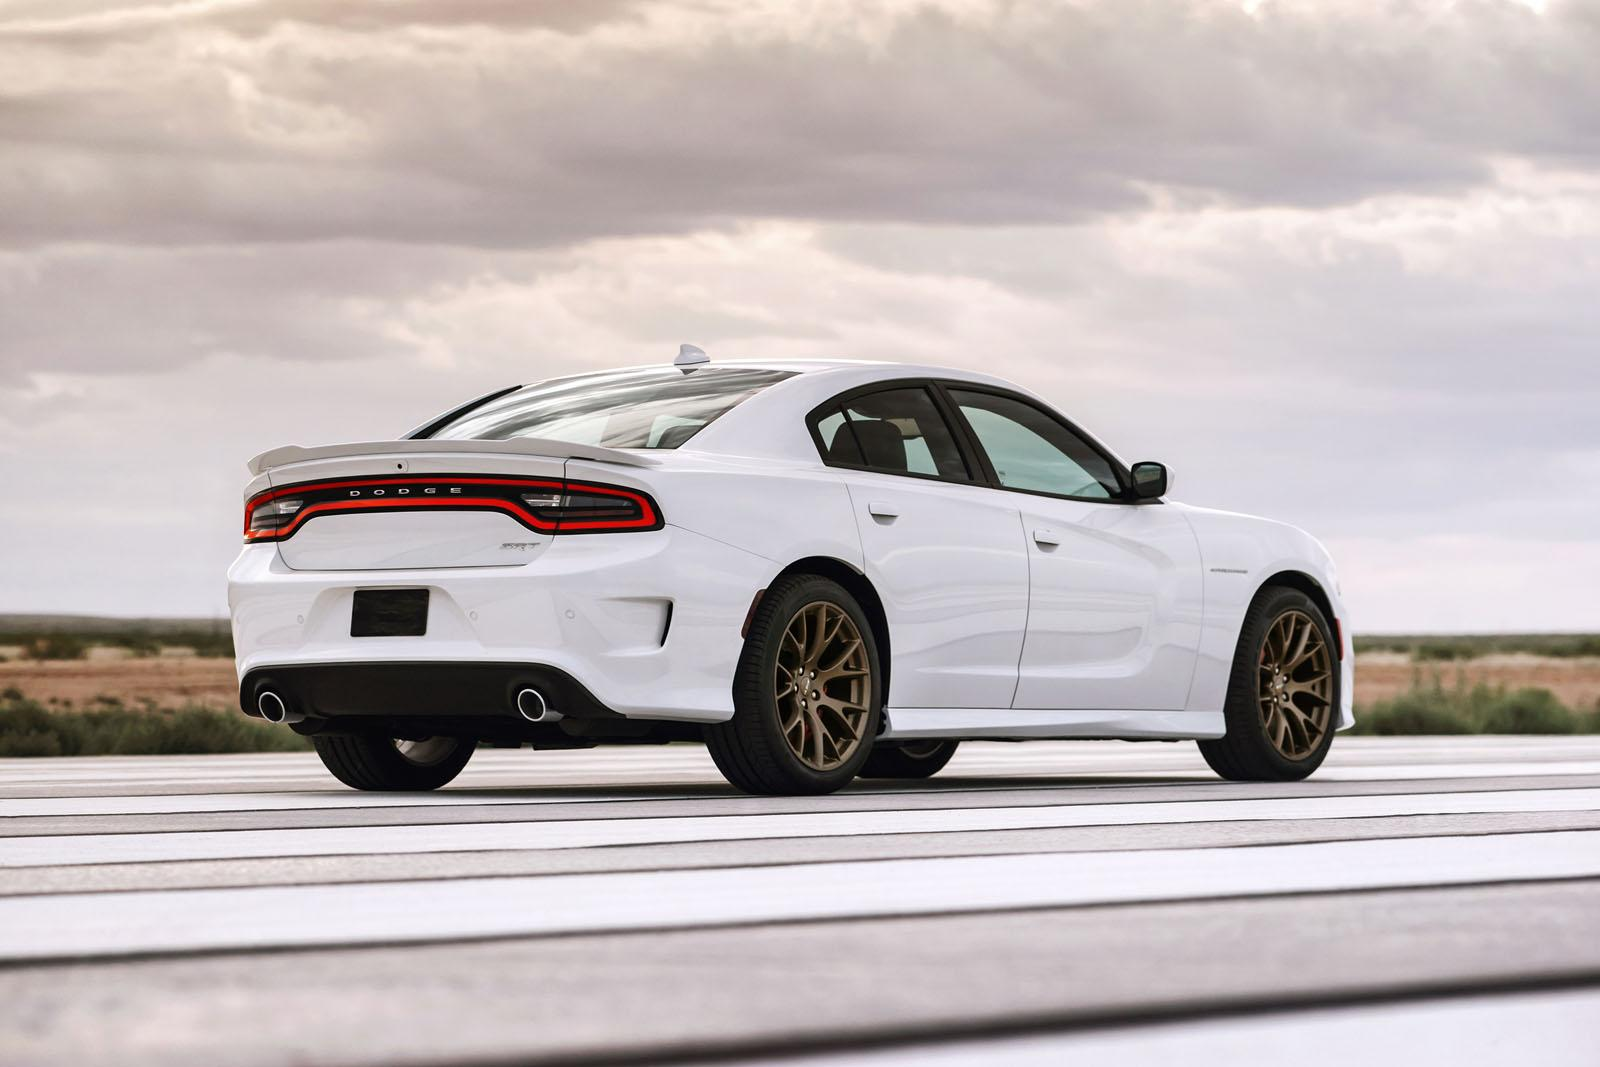 Dodge Cars - News: Fastest 4-door sedan - the Charger SRT ...